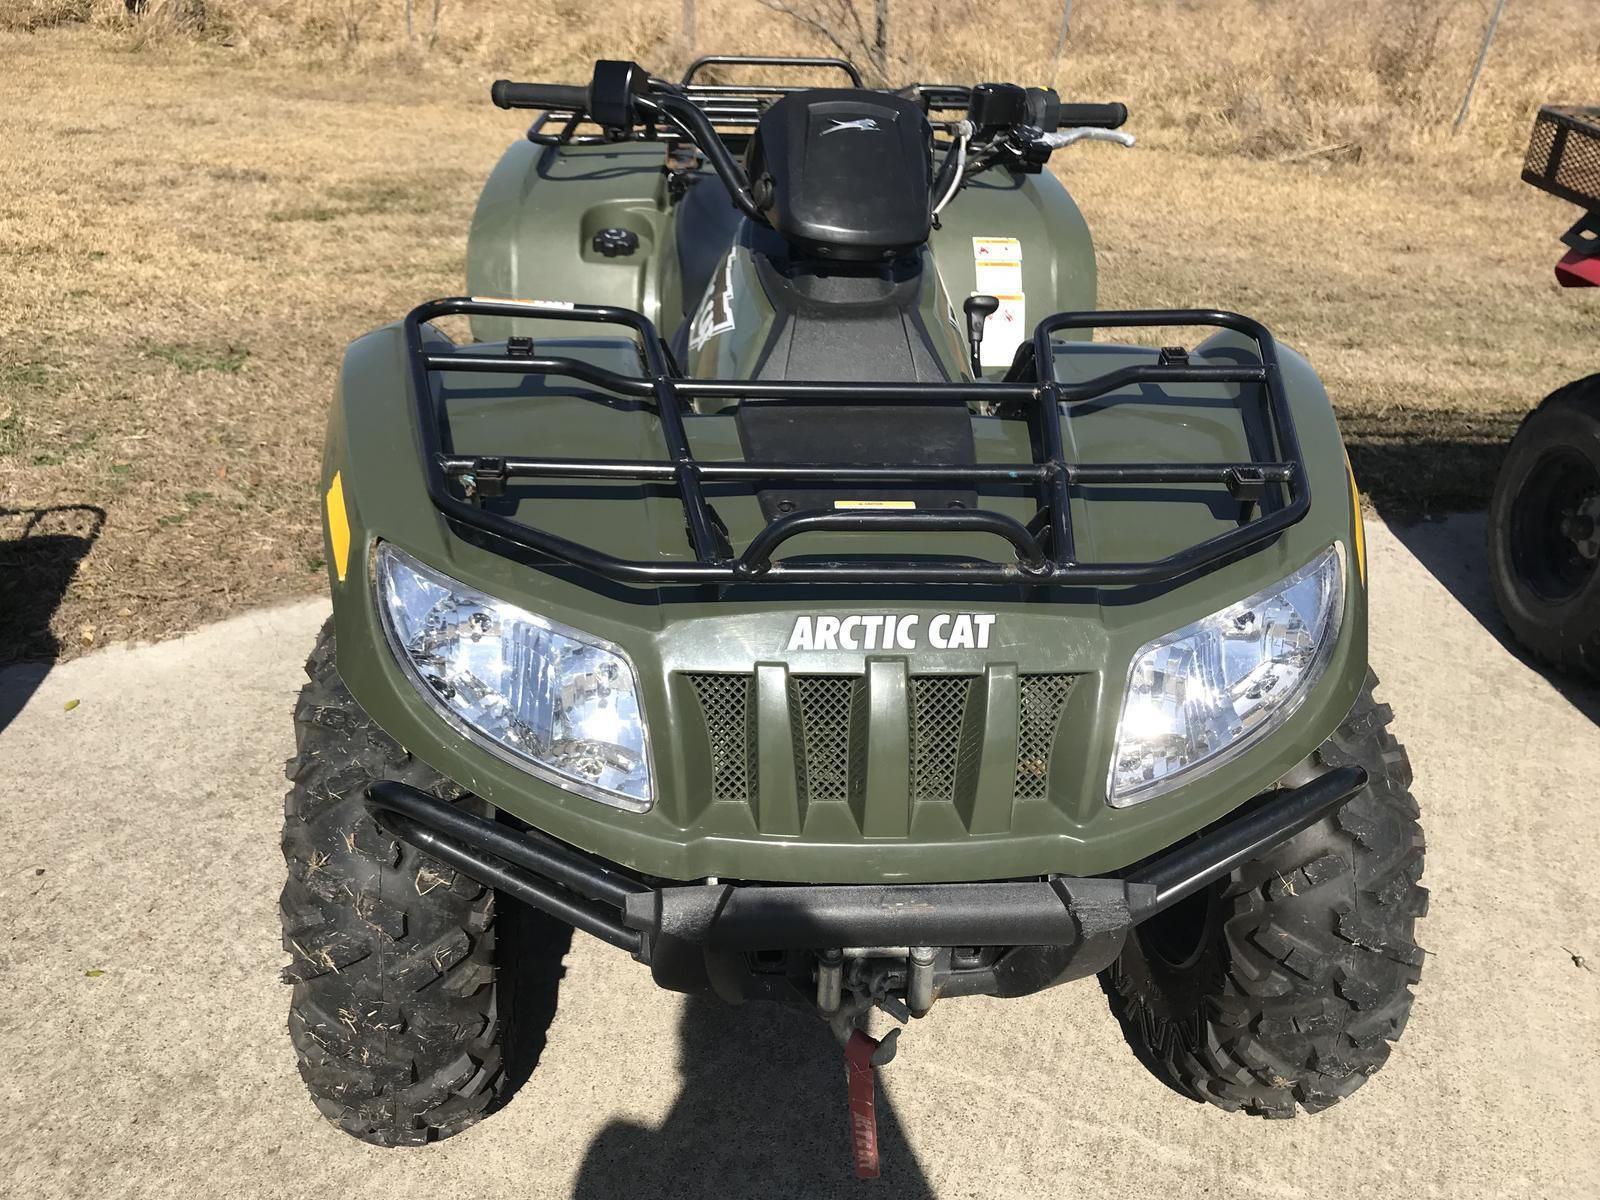 2015 Arctic Cat Arctic Cat 700 Diesel for sale in Victoria